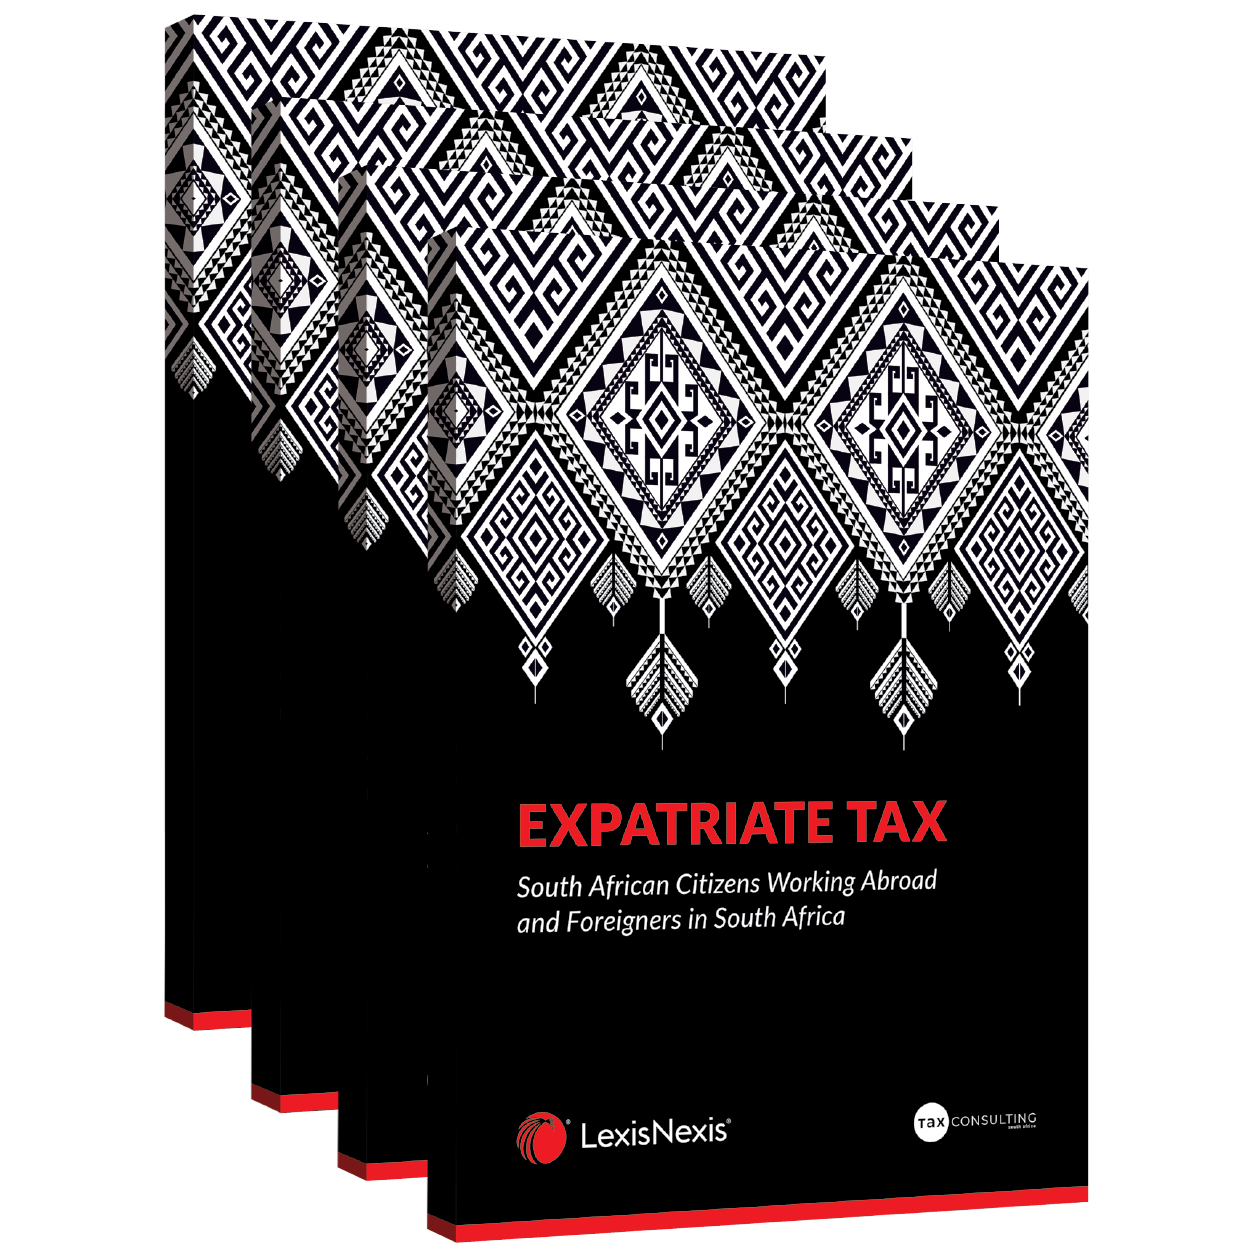 LexisNexis Textbooks for South African expat tax